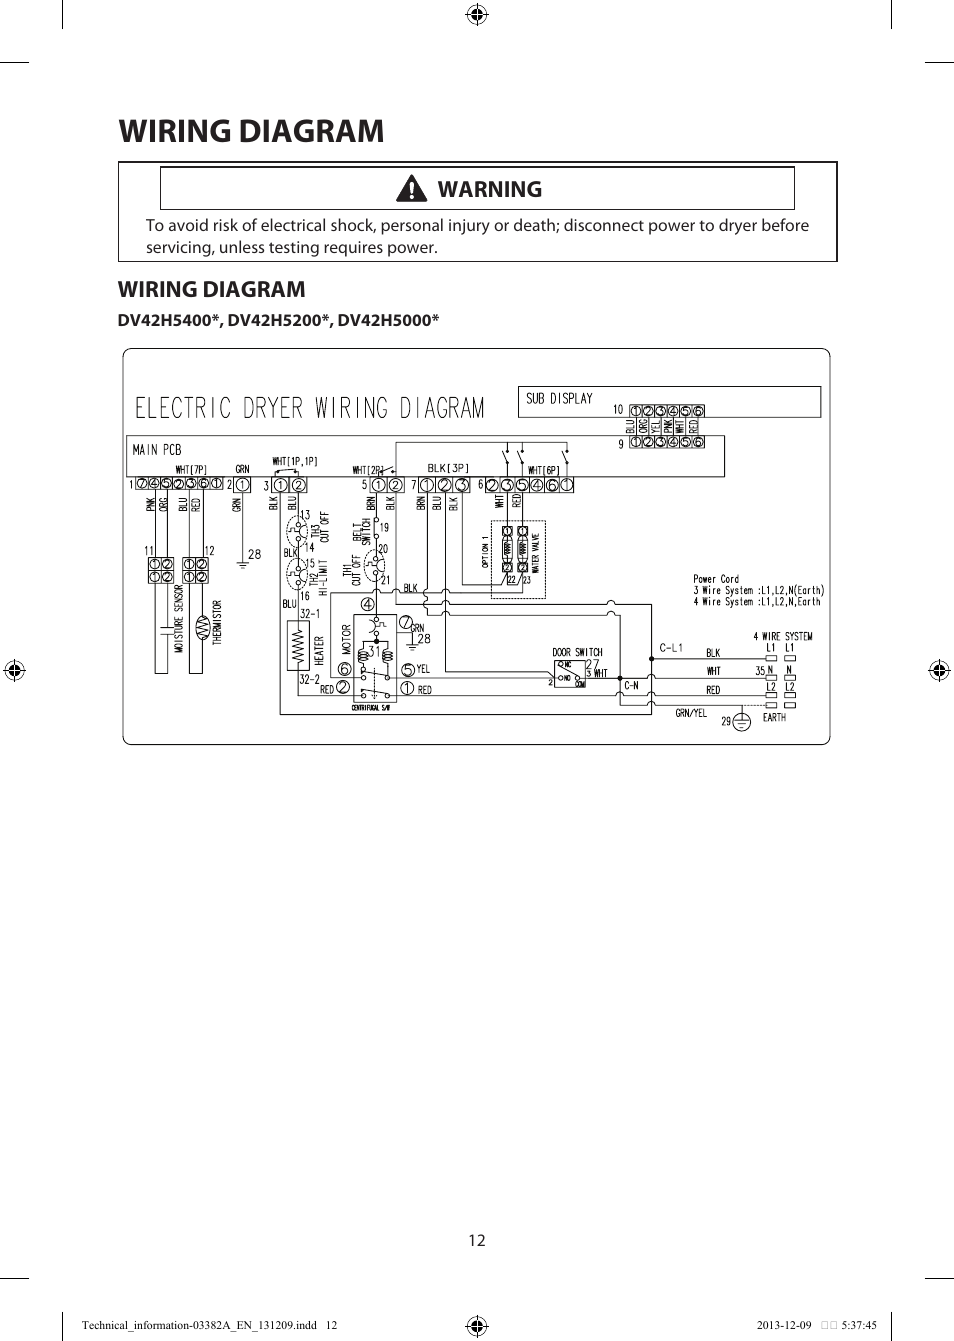 Wiring diagram Warning Samsung DV42H5200EF A3 User